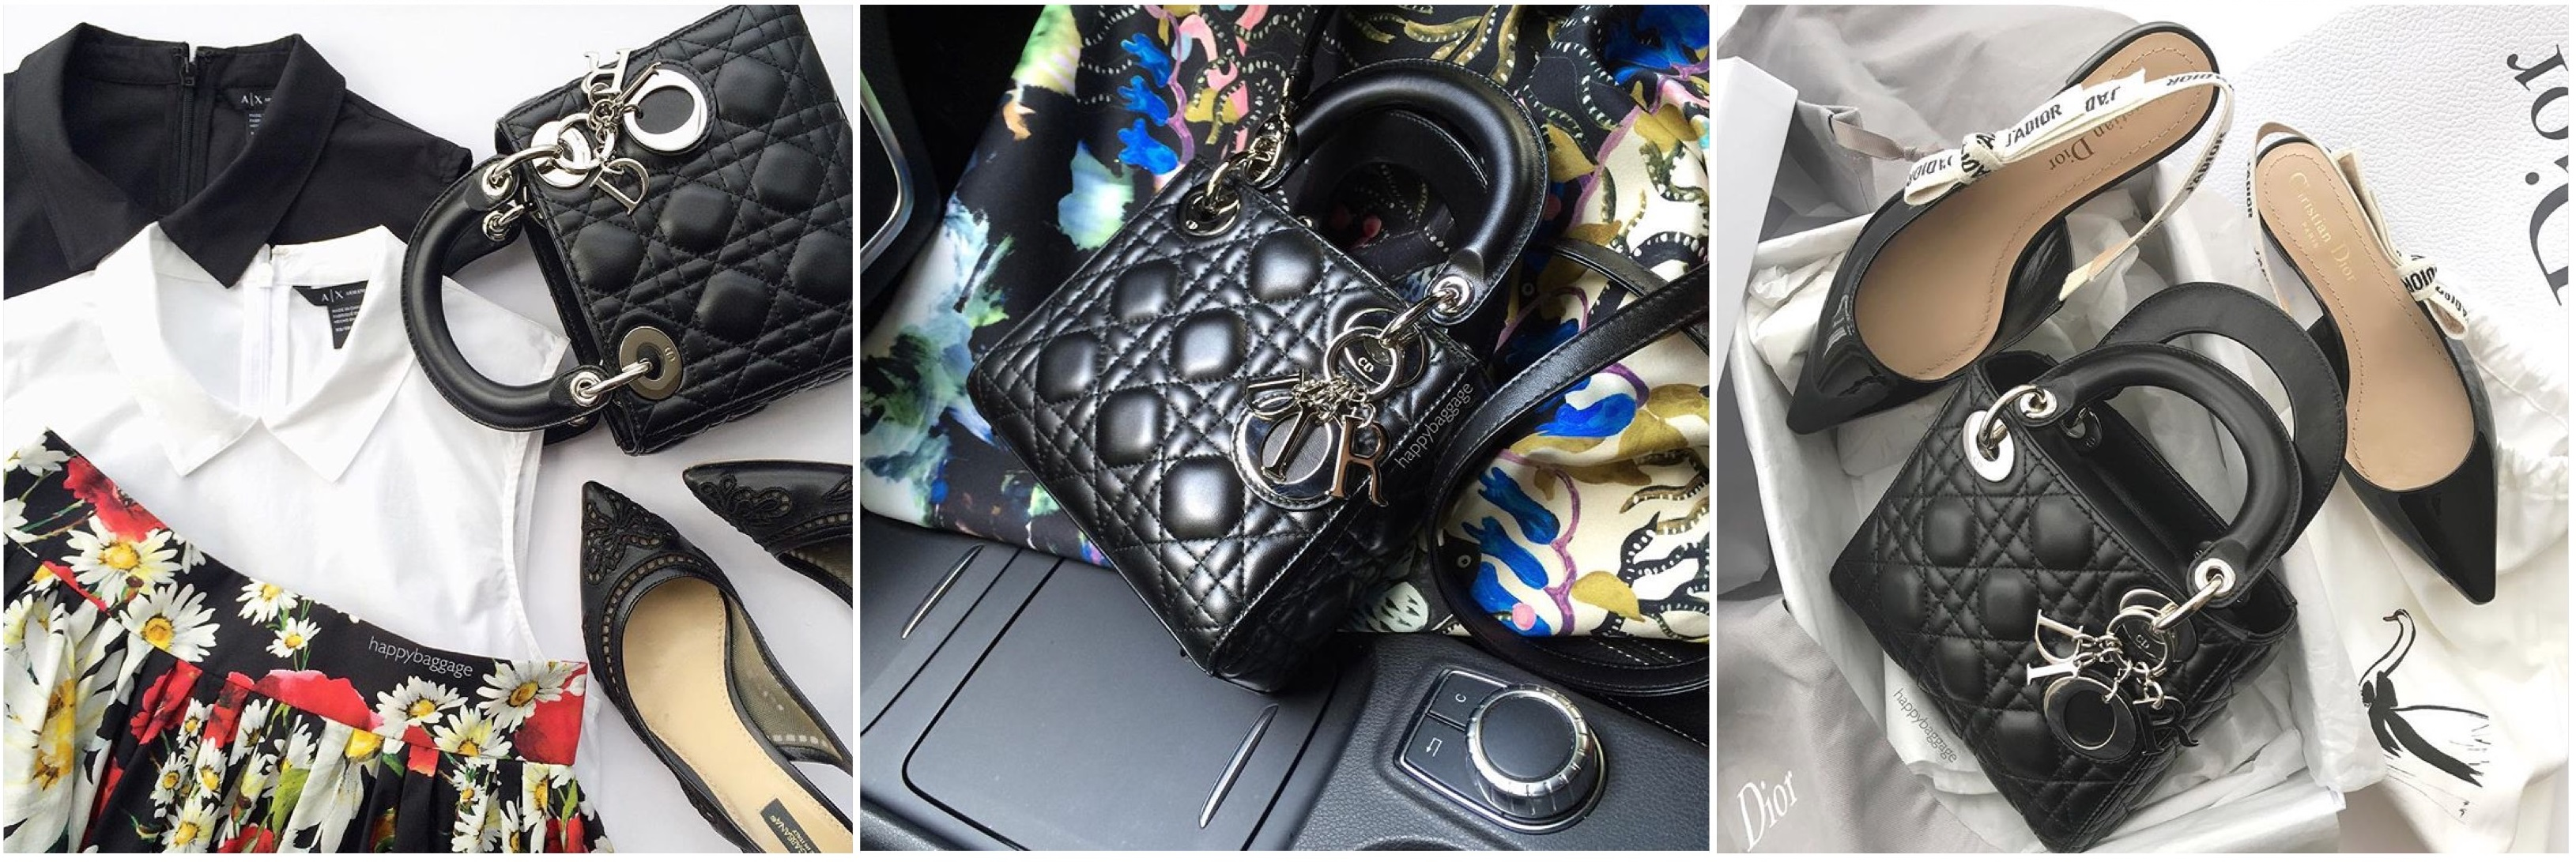 d2b6cc4f8b0 The Day to Evening bag: Lady Dior Mini, in lambskin. This little one has  enough capacity for my day essentials, while offering formality if I need  to attend ...